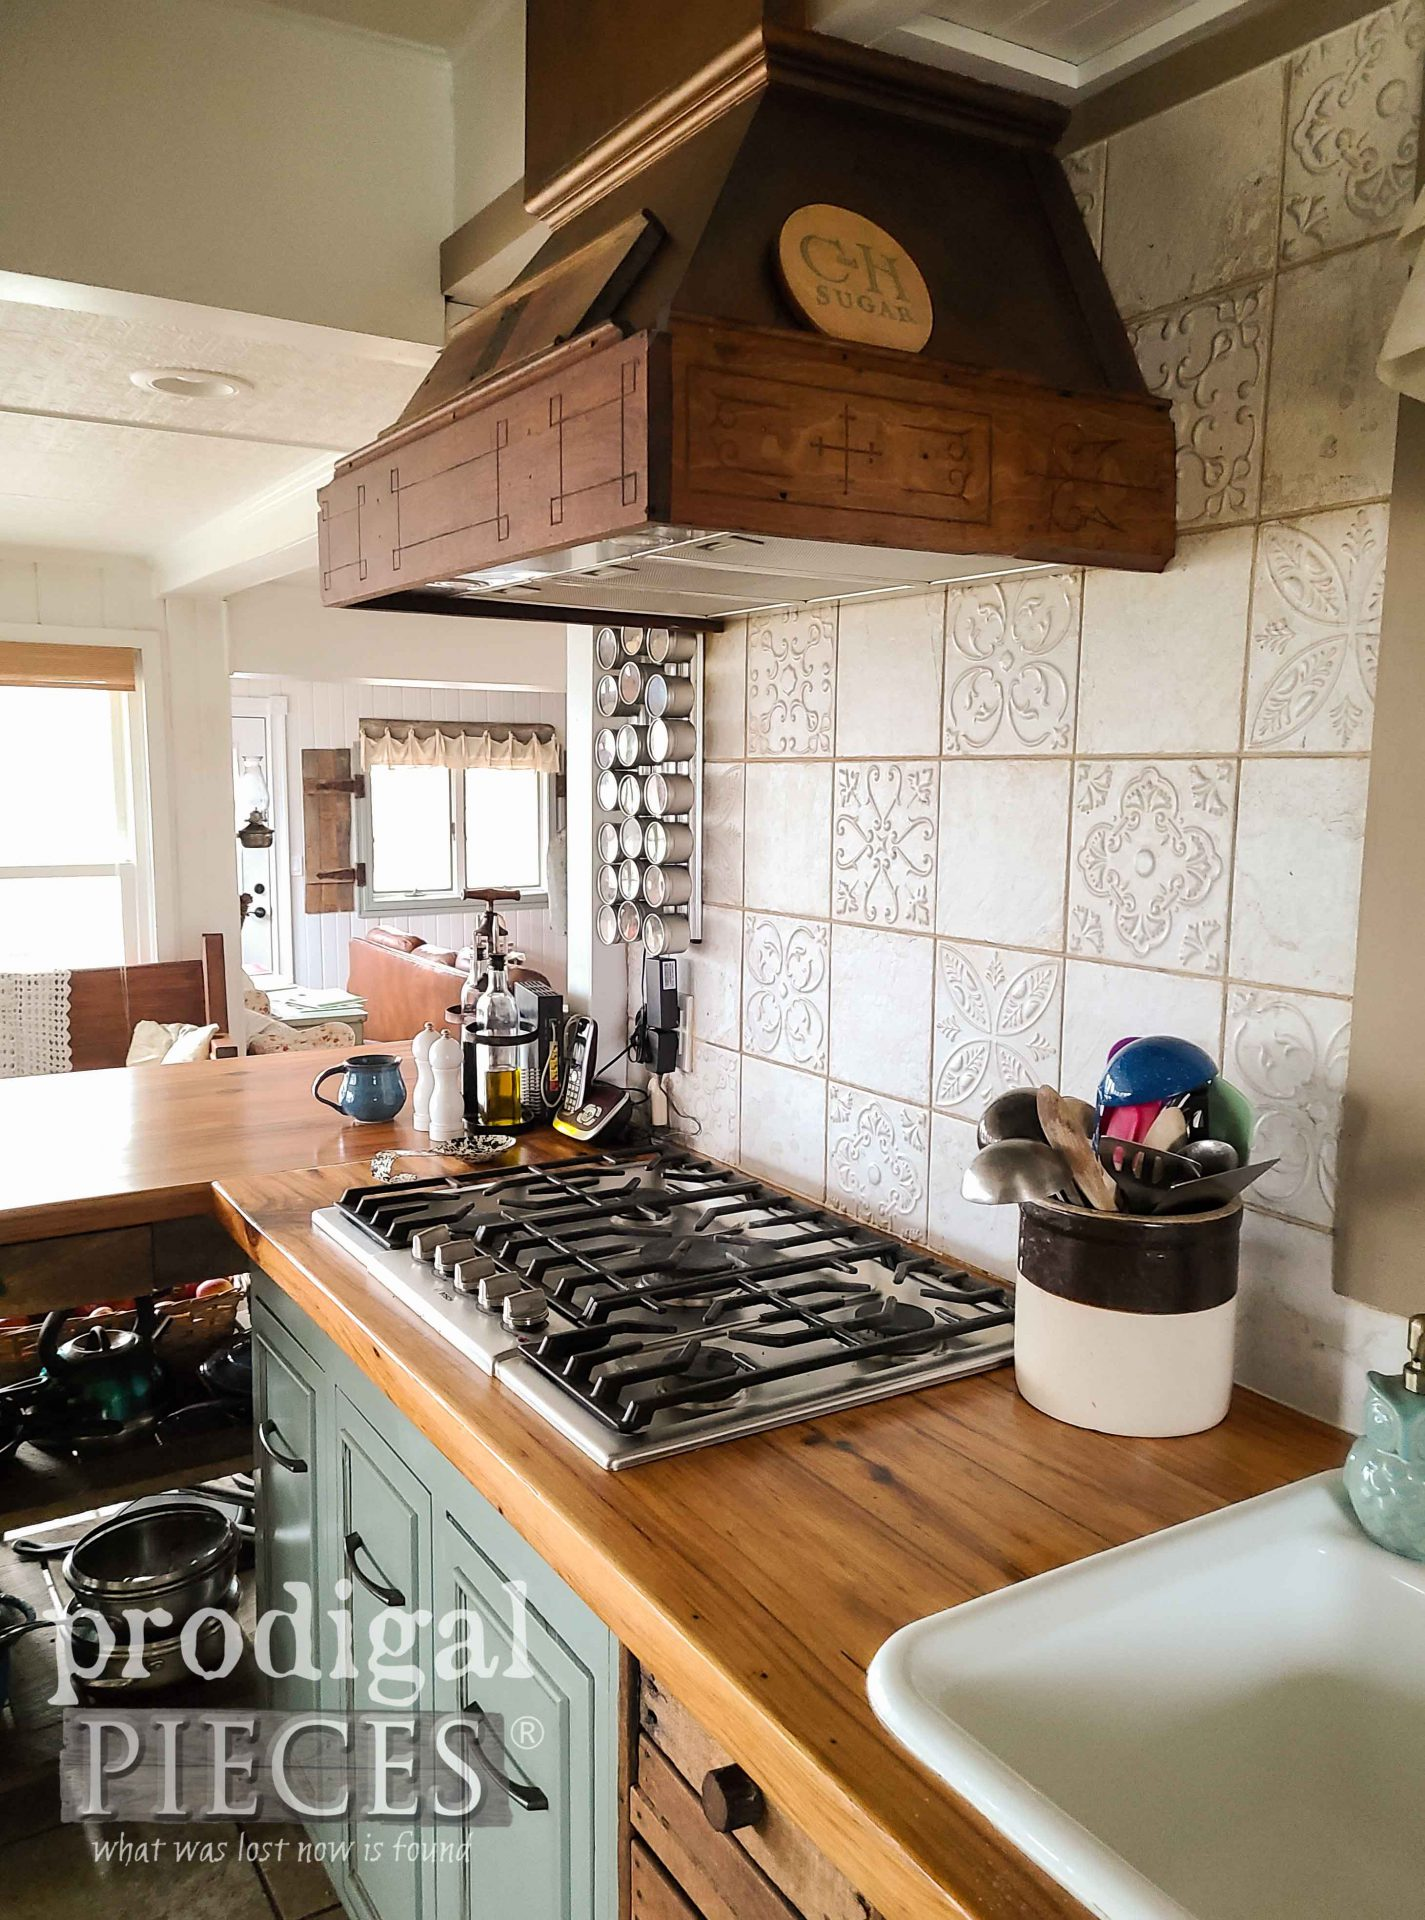 Custom Farmhouse Kitchen Range Built from Reclaimed Wood by Larissa of Prodigal Pieces | prodigalpieces.com #prodigalpieces #farmhouse #kitchen #home #homedecor